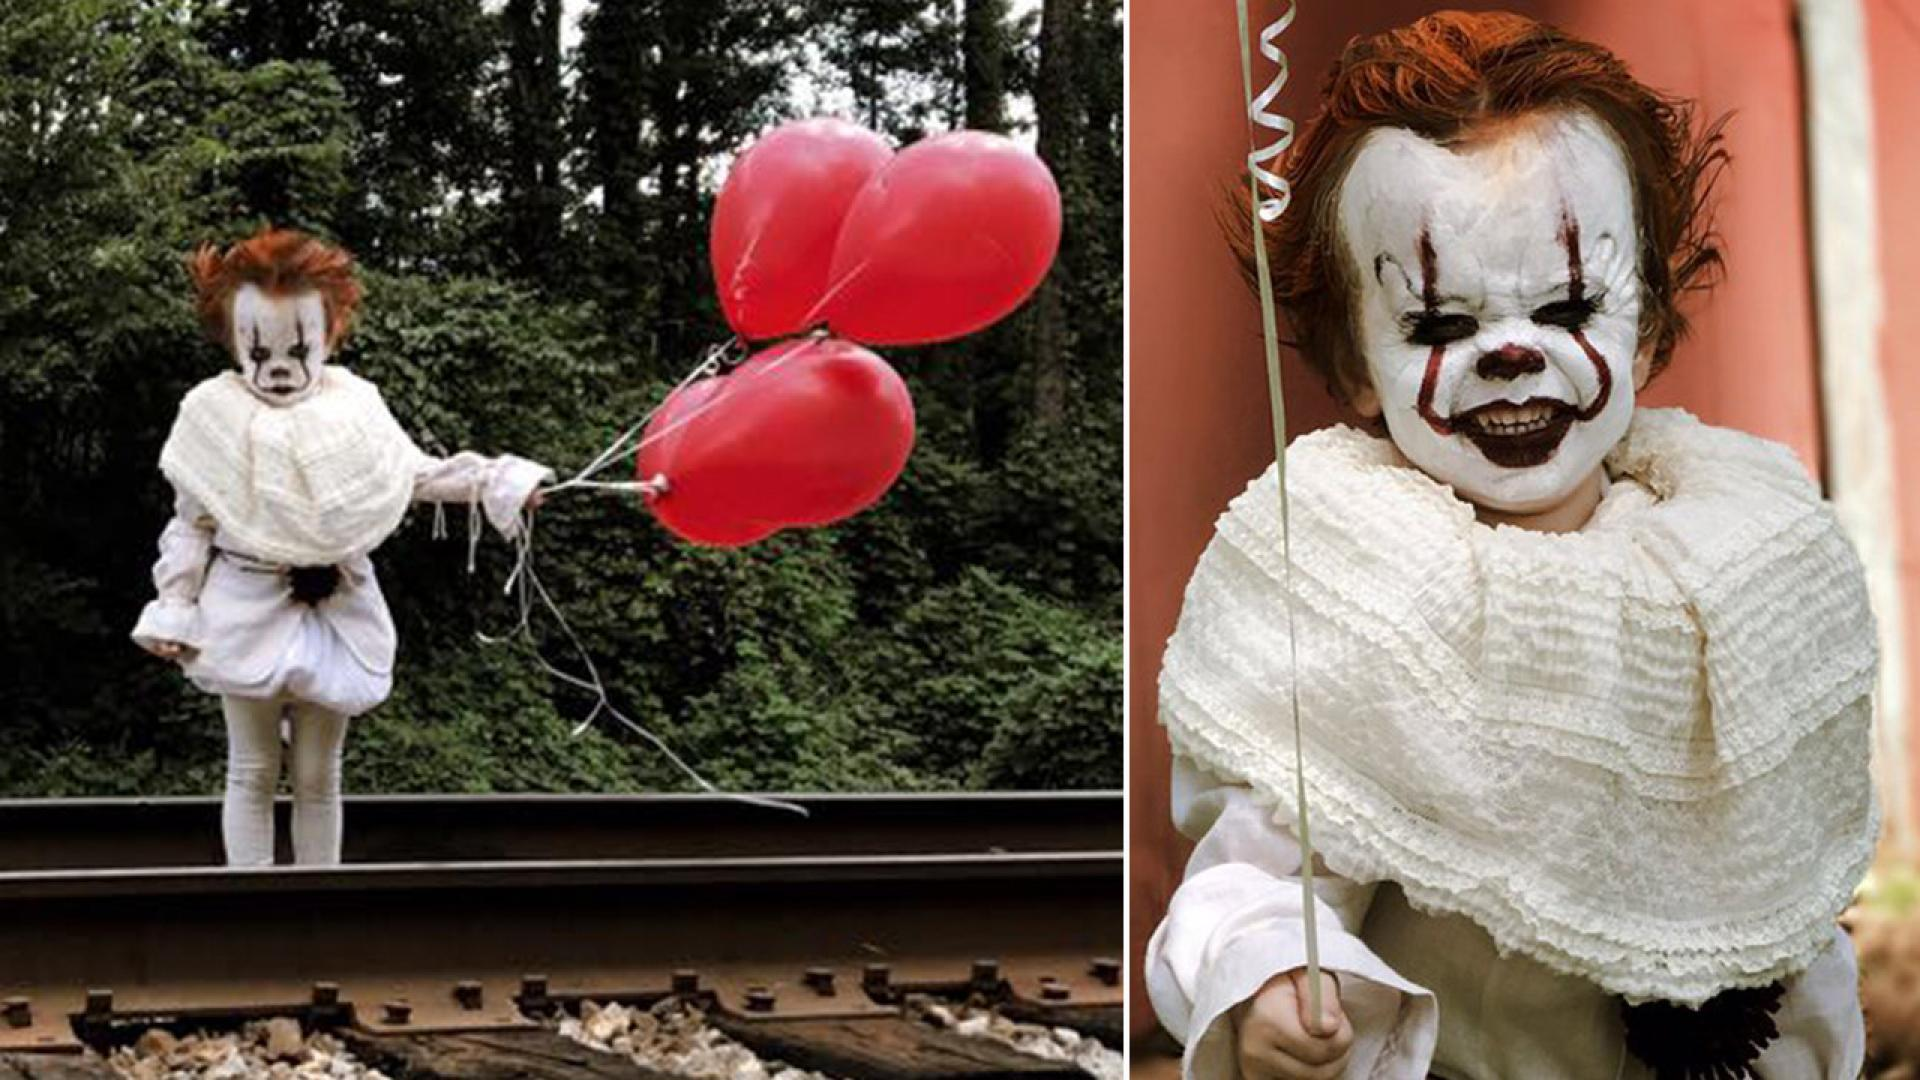 3 Year Old Poses As Pennywise The Clown From Stephen King S It In Chilling Photo Shoot Inside Edition